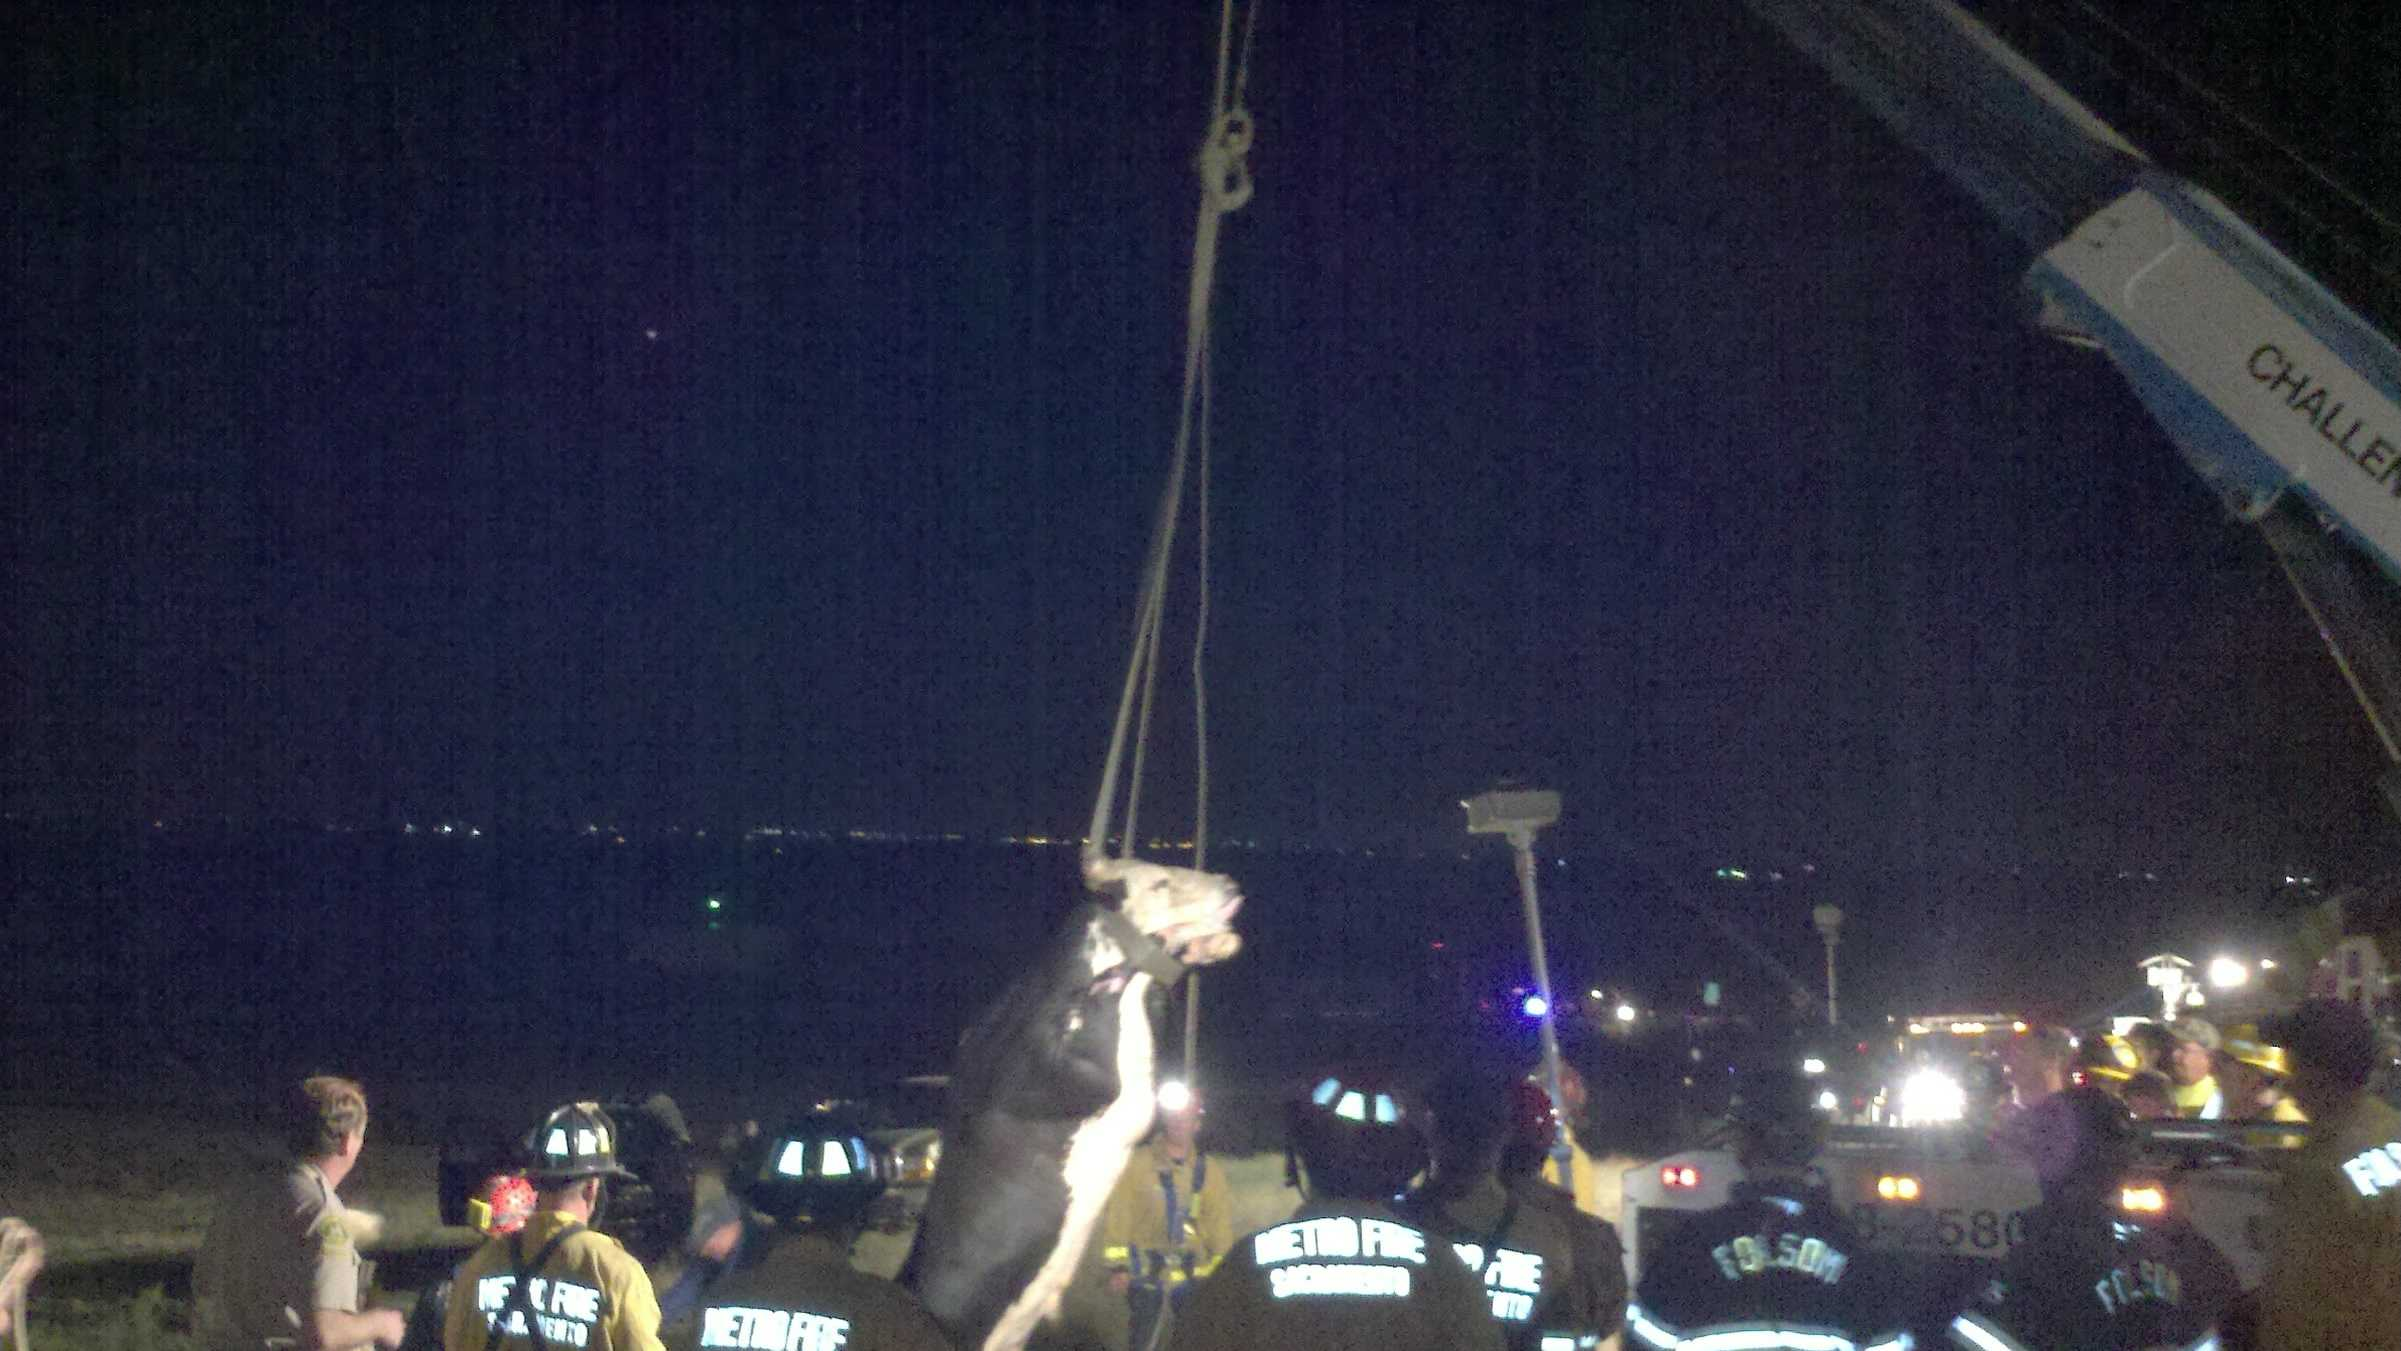 The bull is pulled out of the well after midnight Wednesday morning. The bull recovered in the field afterward.